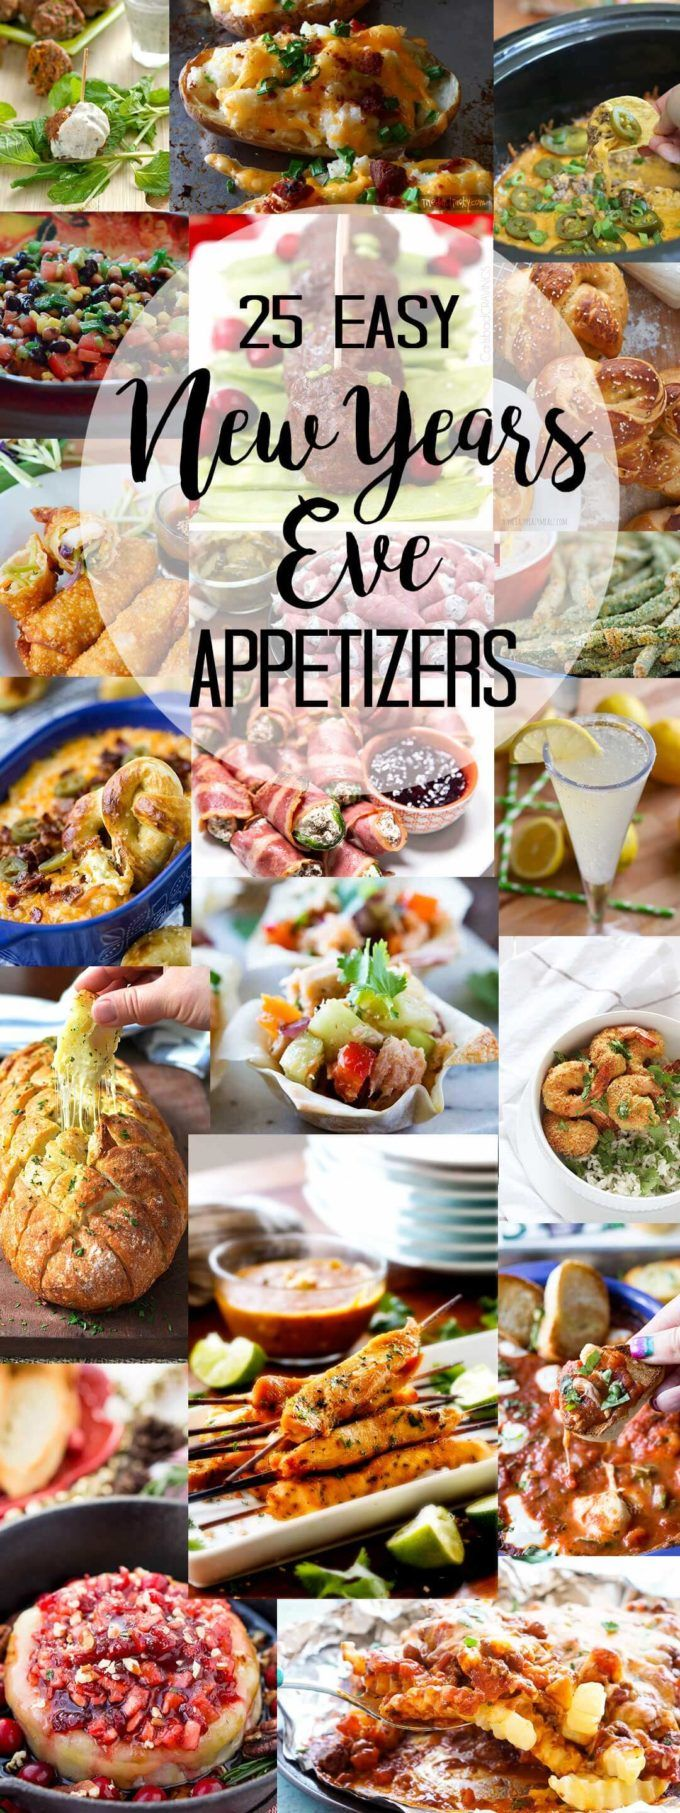 25 New Year's Eve Appetizers - Easy Peasy Meals